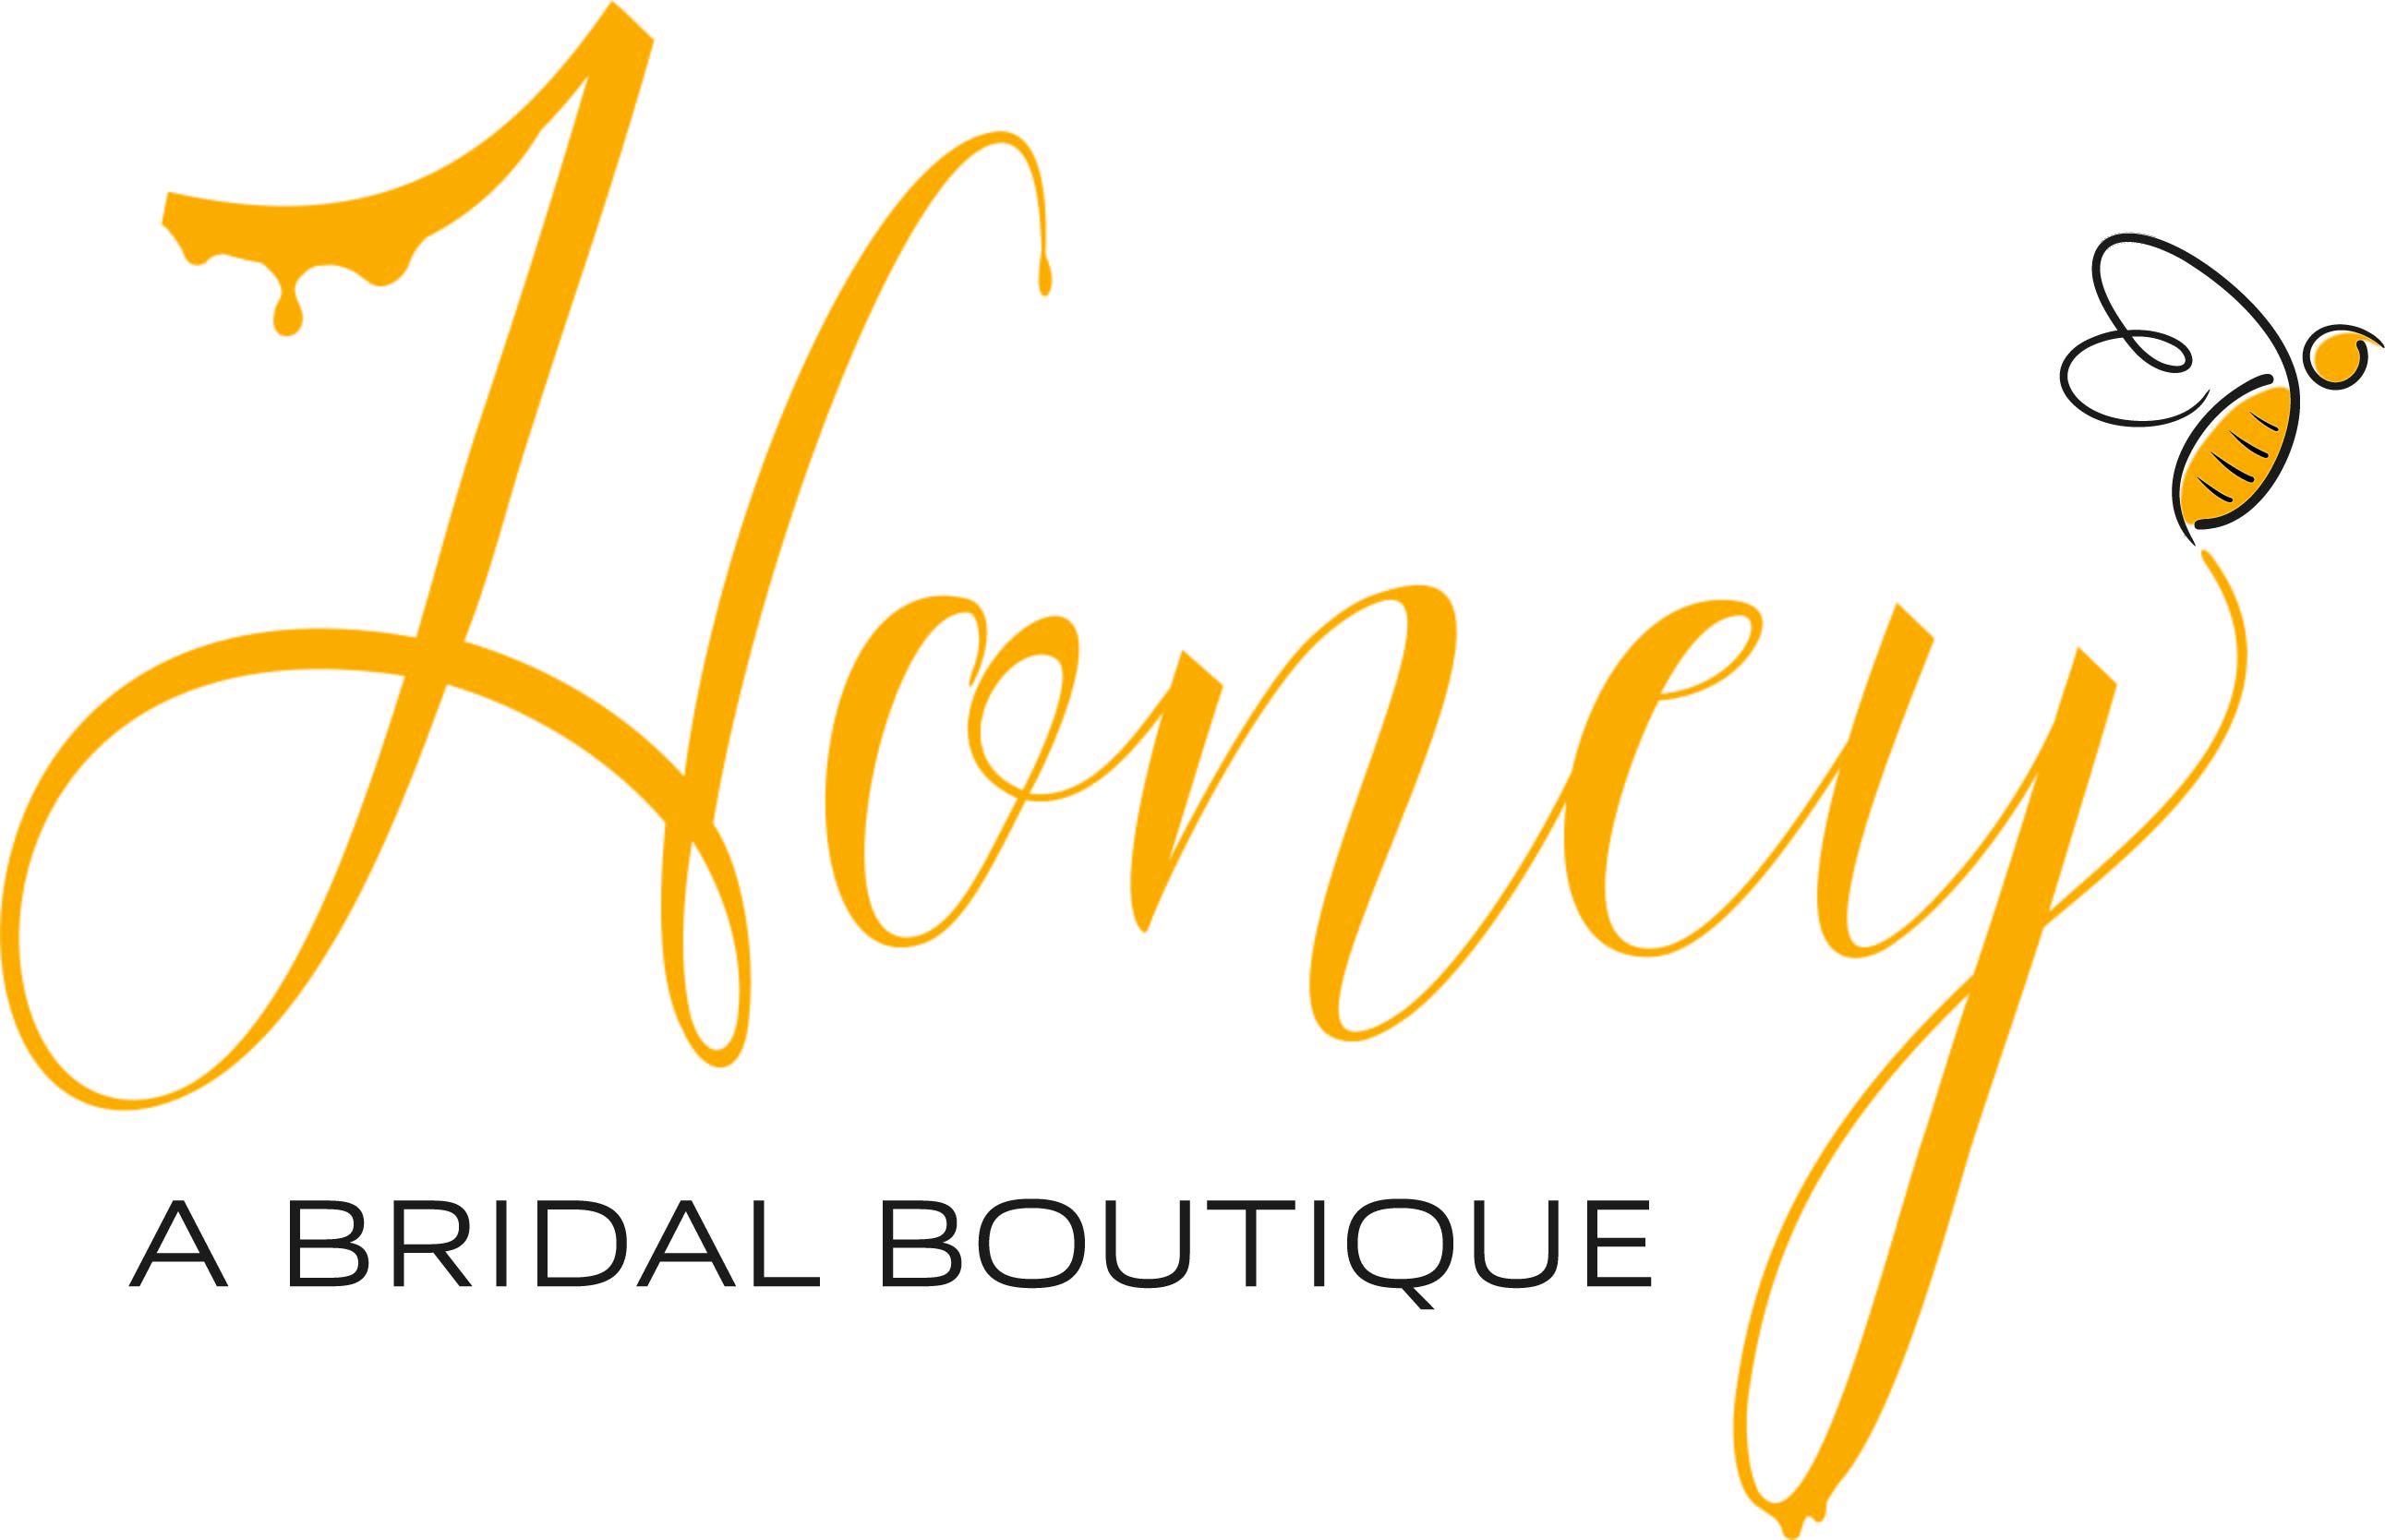 Honey- A Bridal Boutique